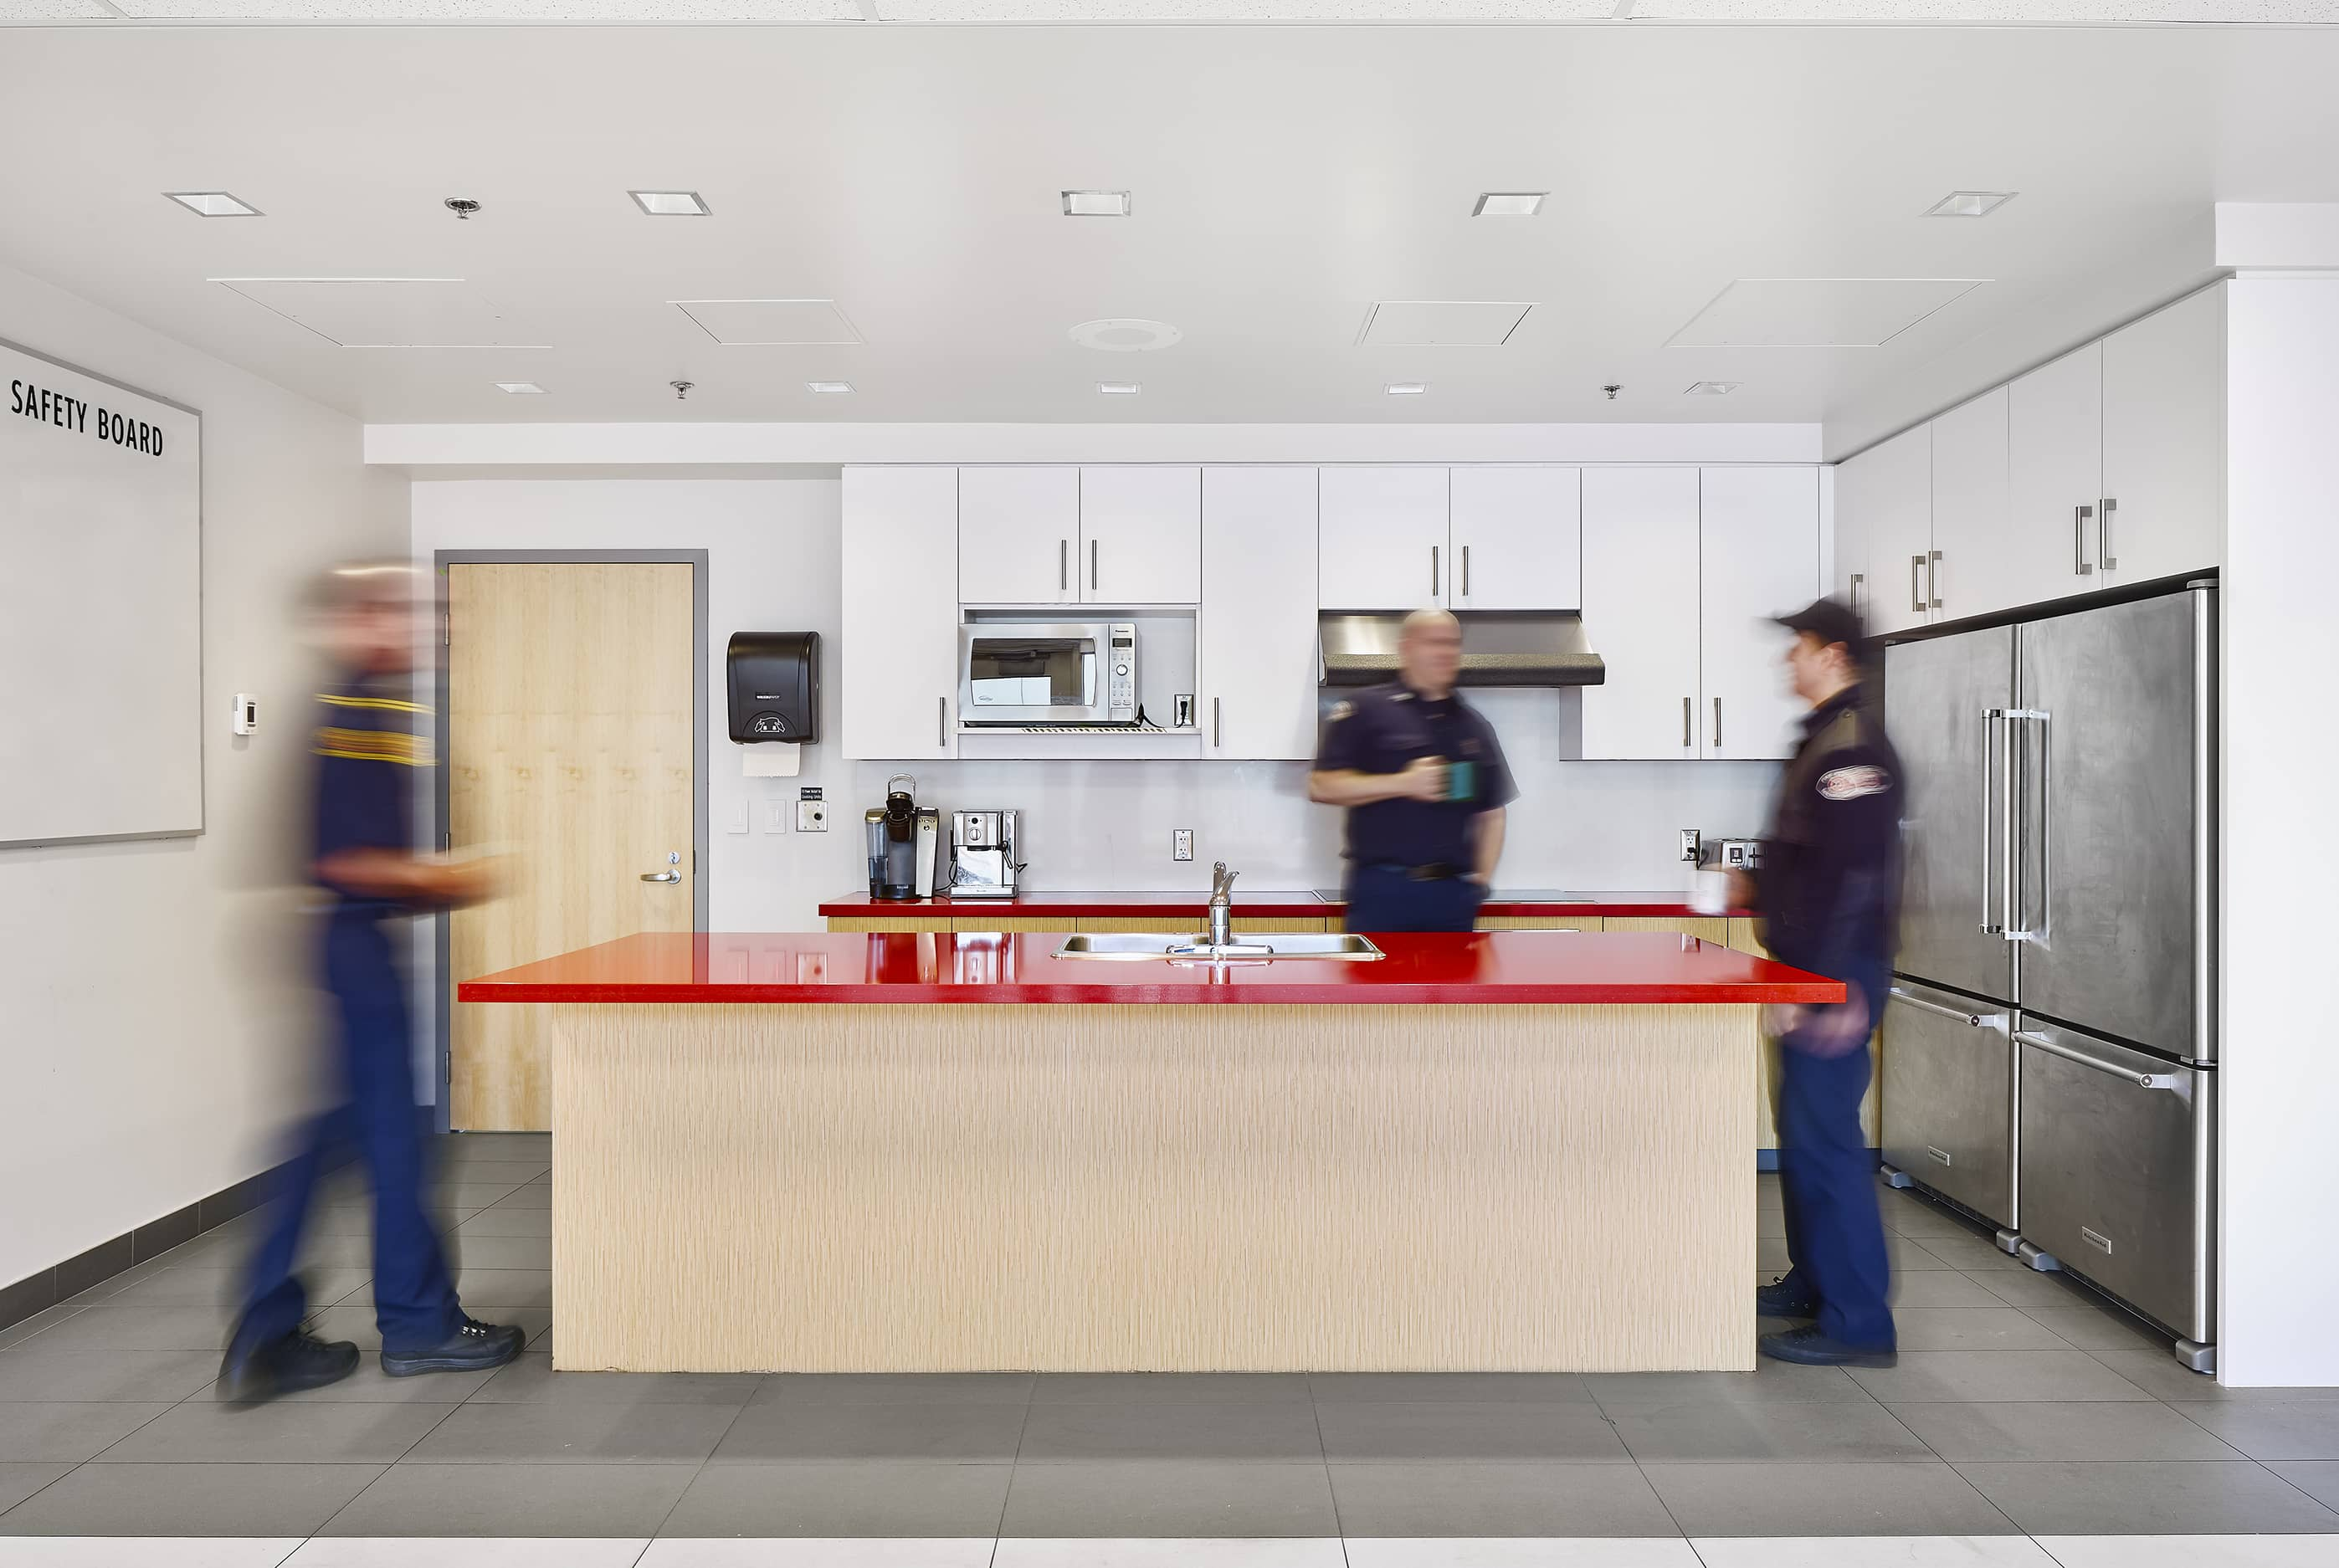 bbp cambie fire hall no. 3 & ambulance station interior breakroom